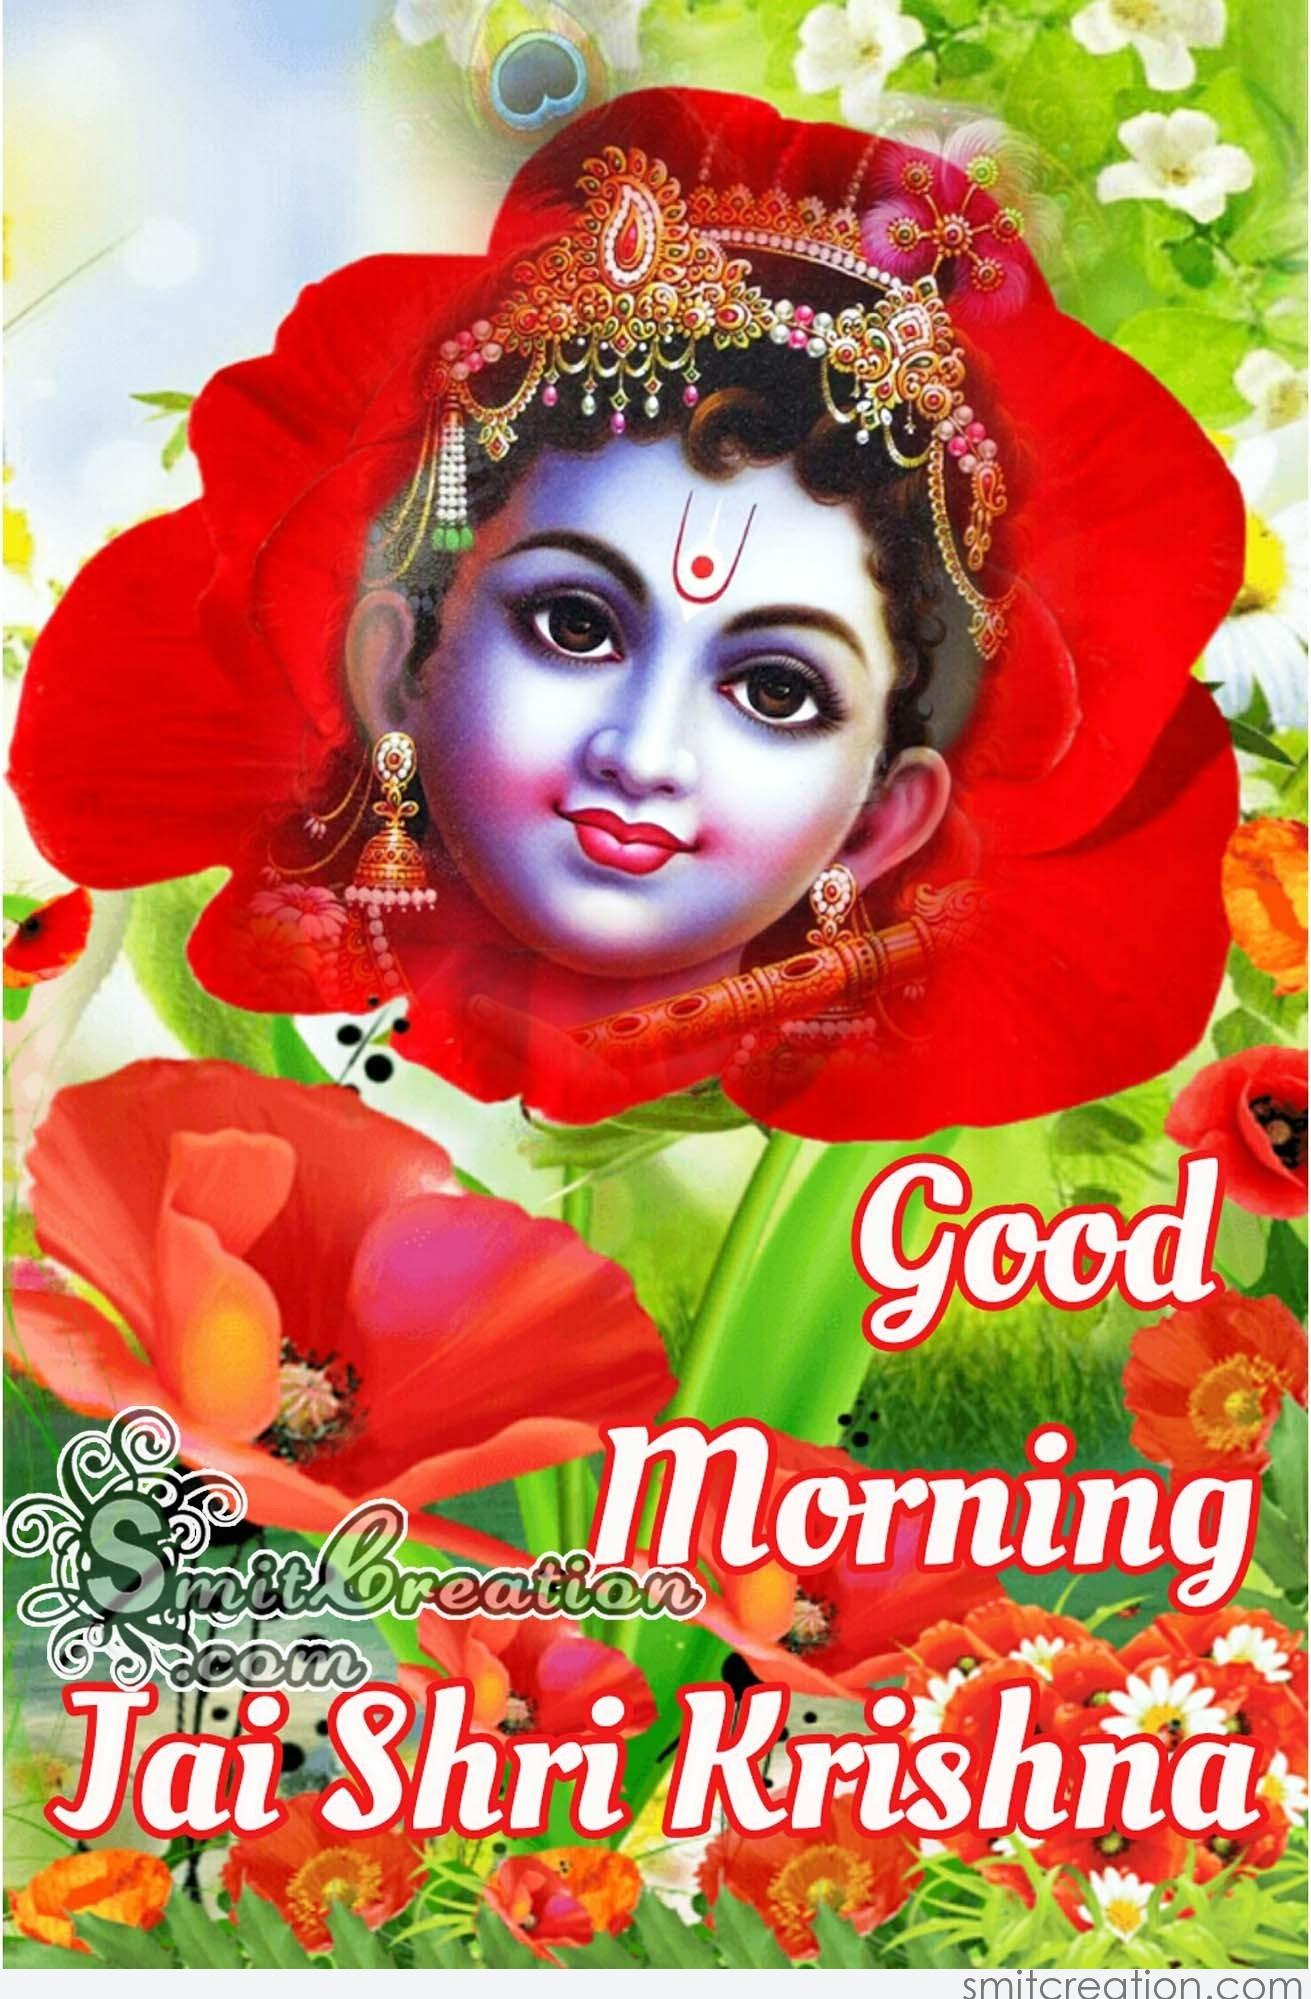 Good Morning Jai Shri Krishna Smitcreationcom